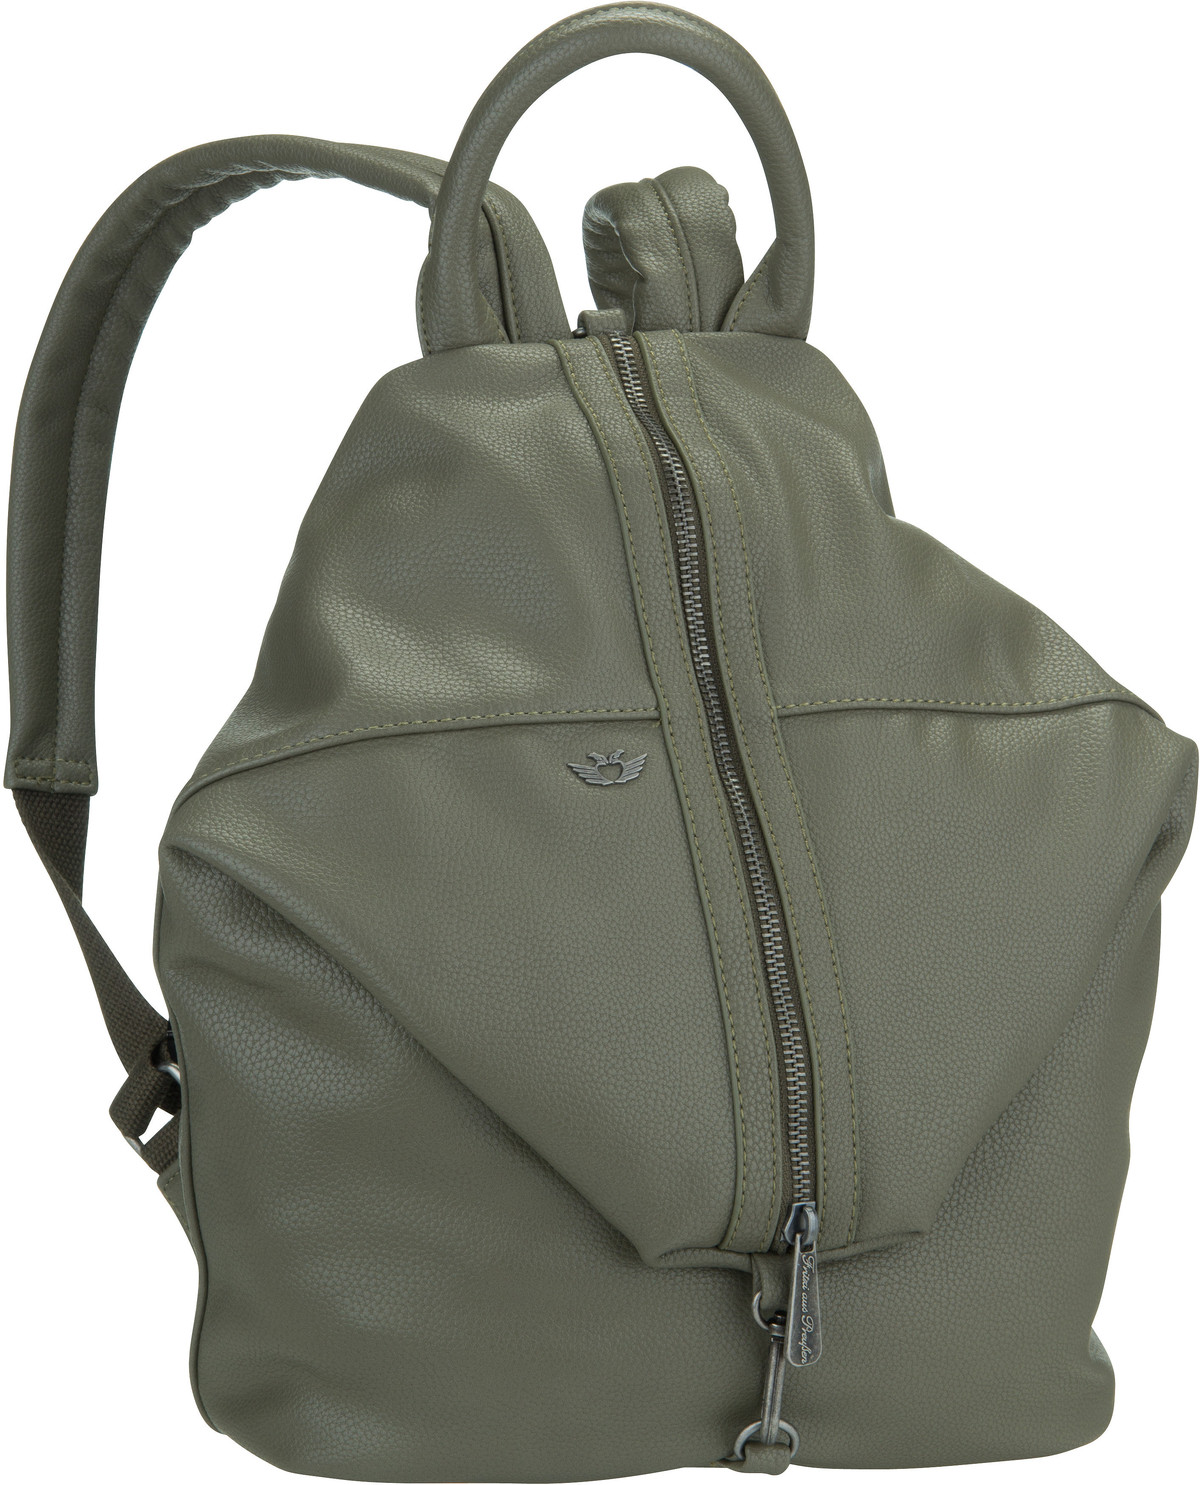 Rucksack / Daypack Marit Reloaded Philo Jungle